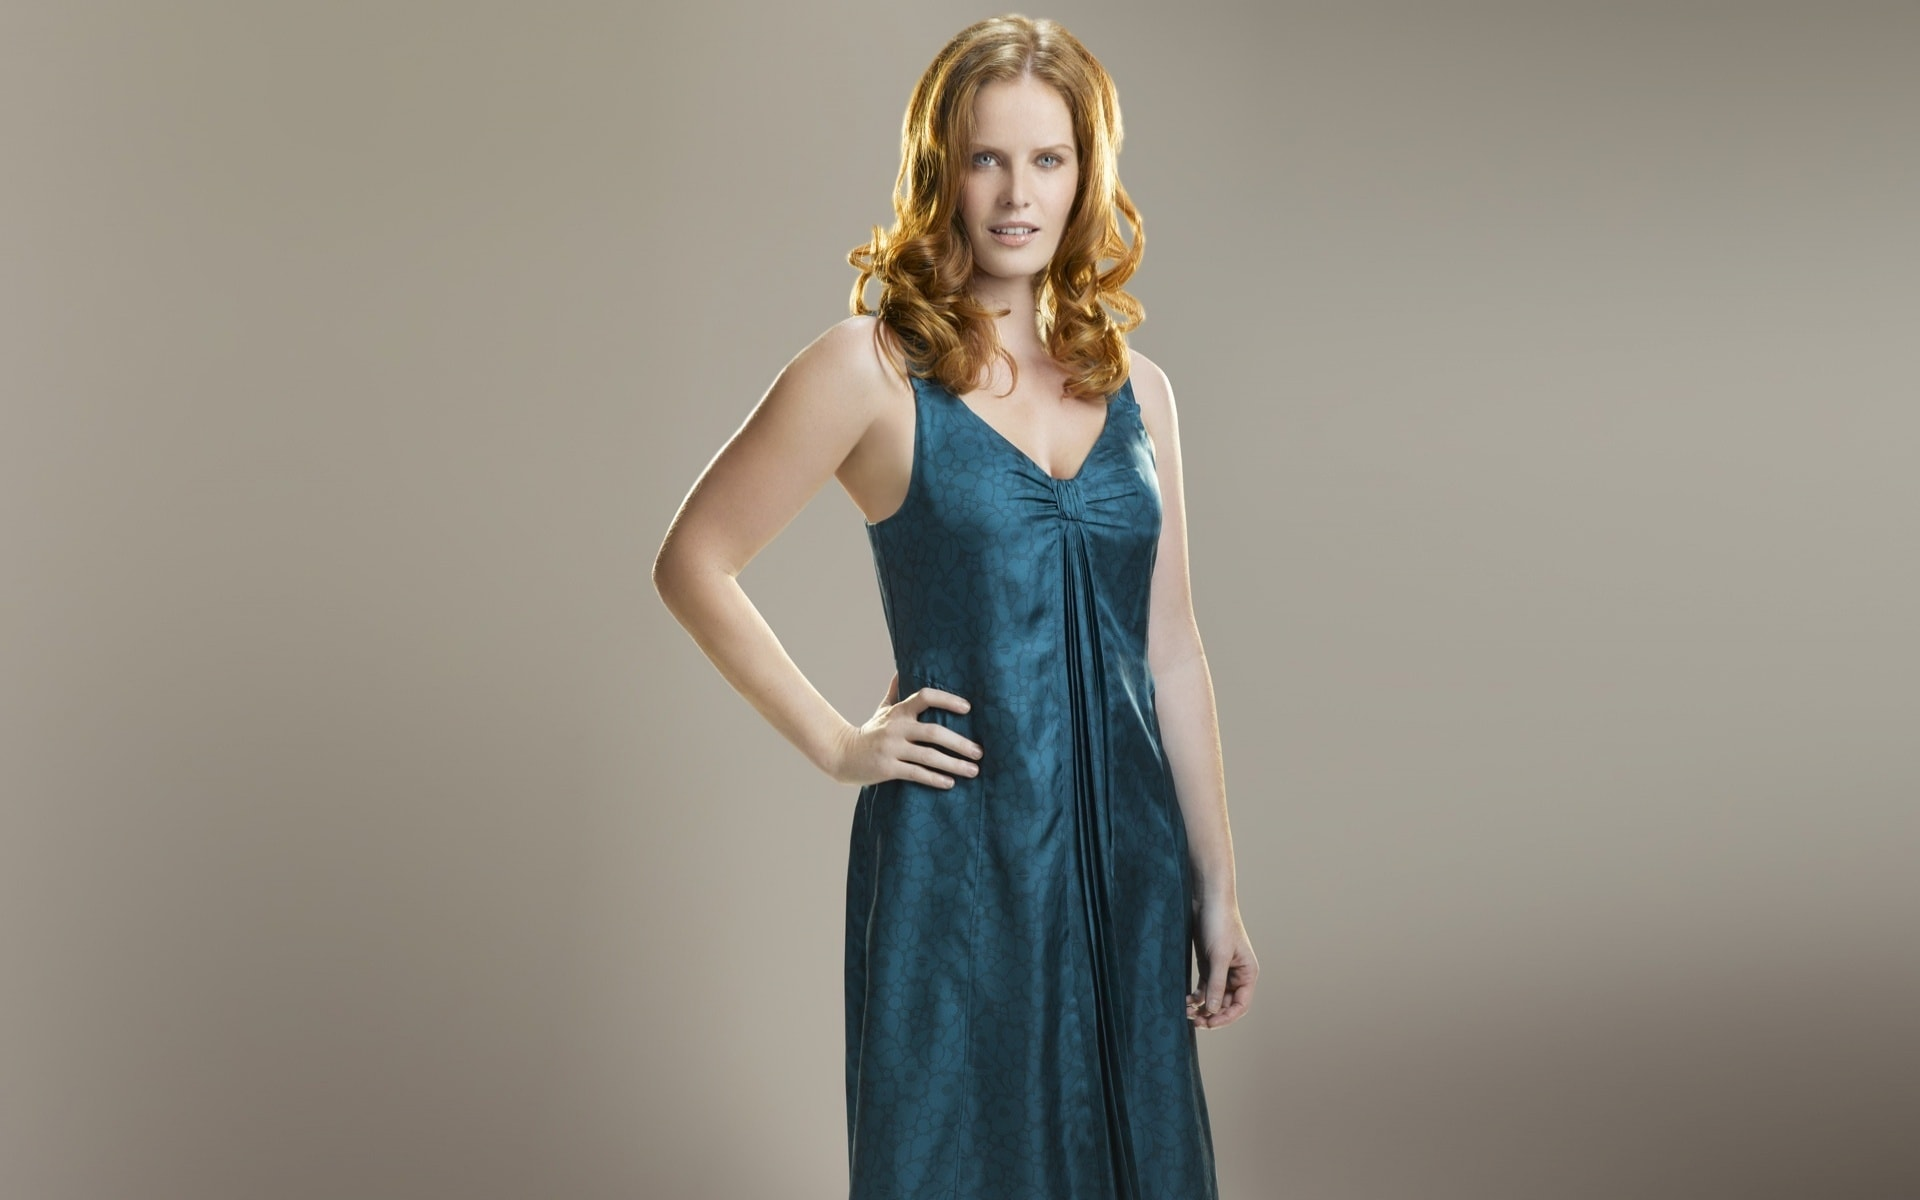 Rebecca Mader HQ wallpapers